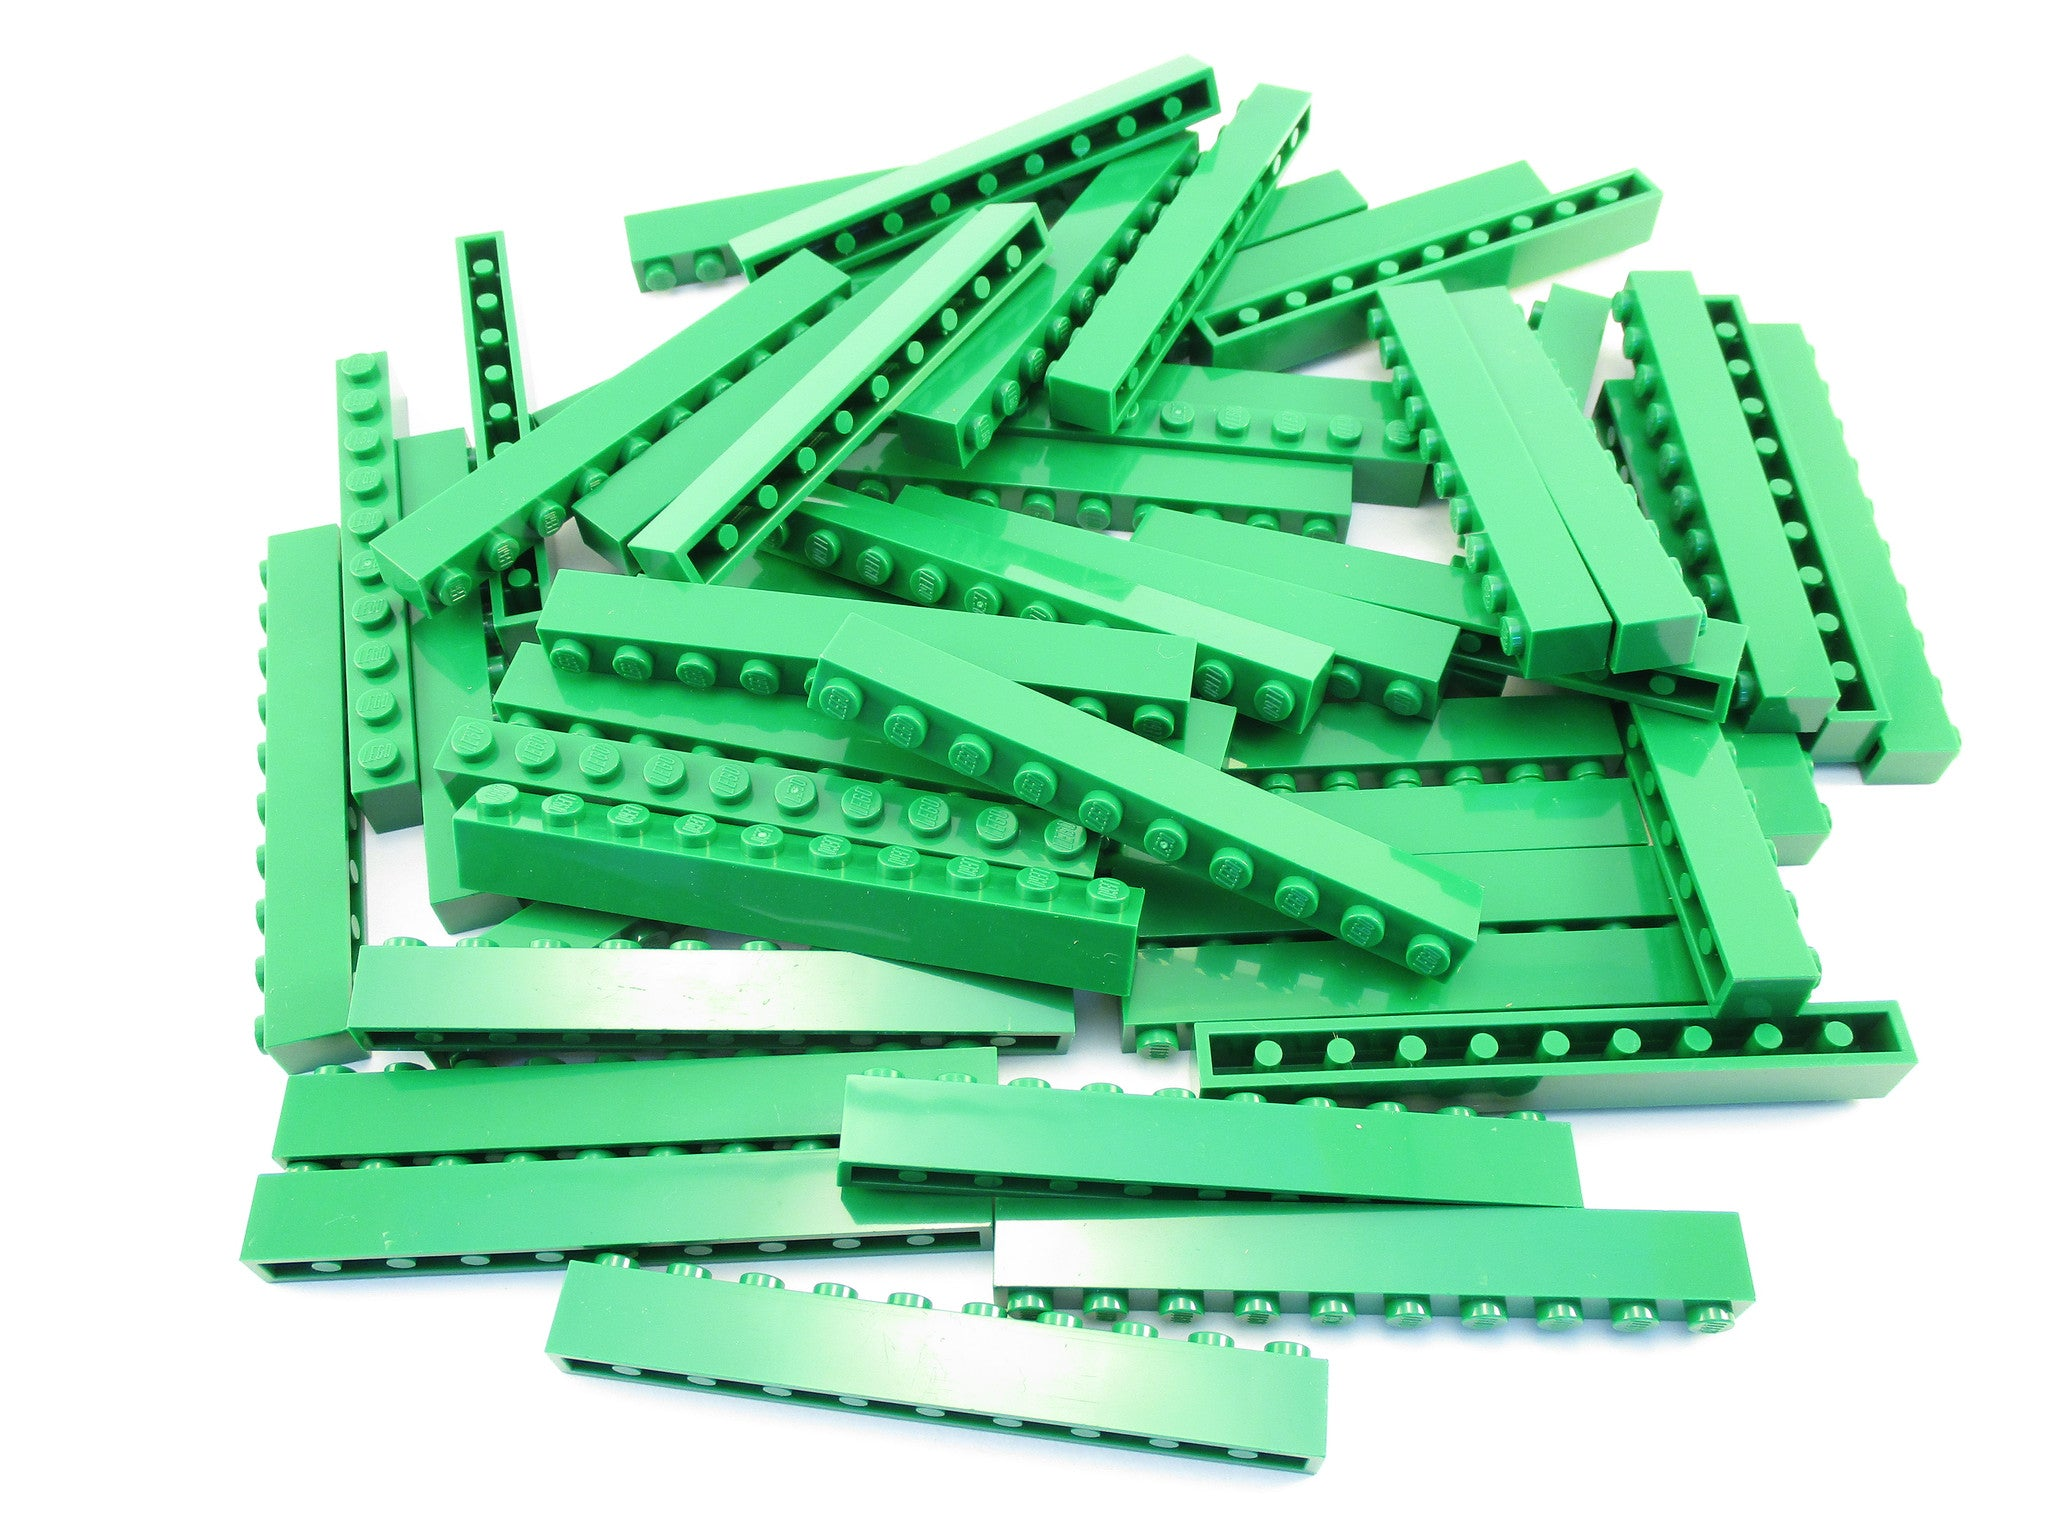 LEGO Green Brick 1x10 Lot of 50 Parts Pieces 6111